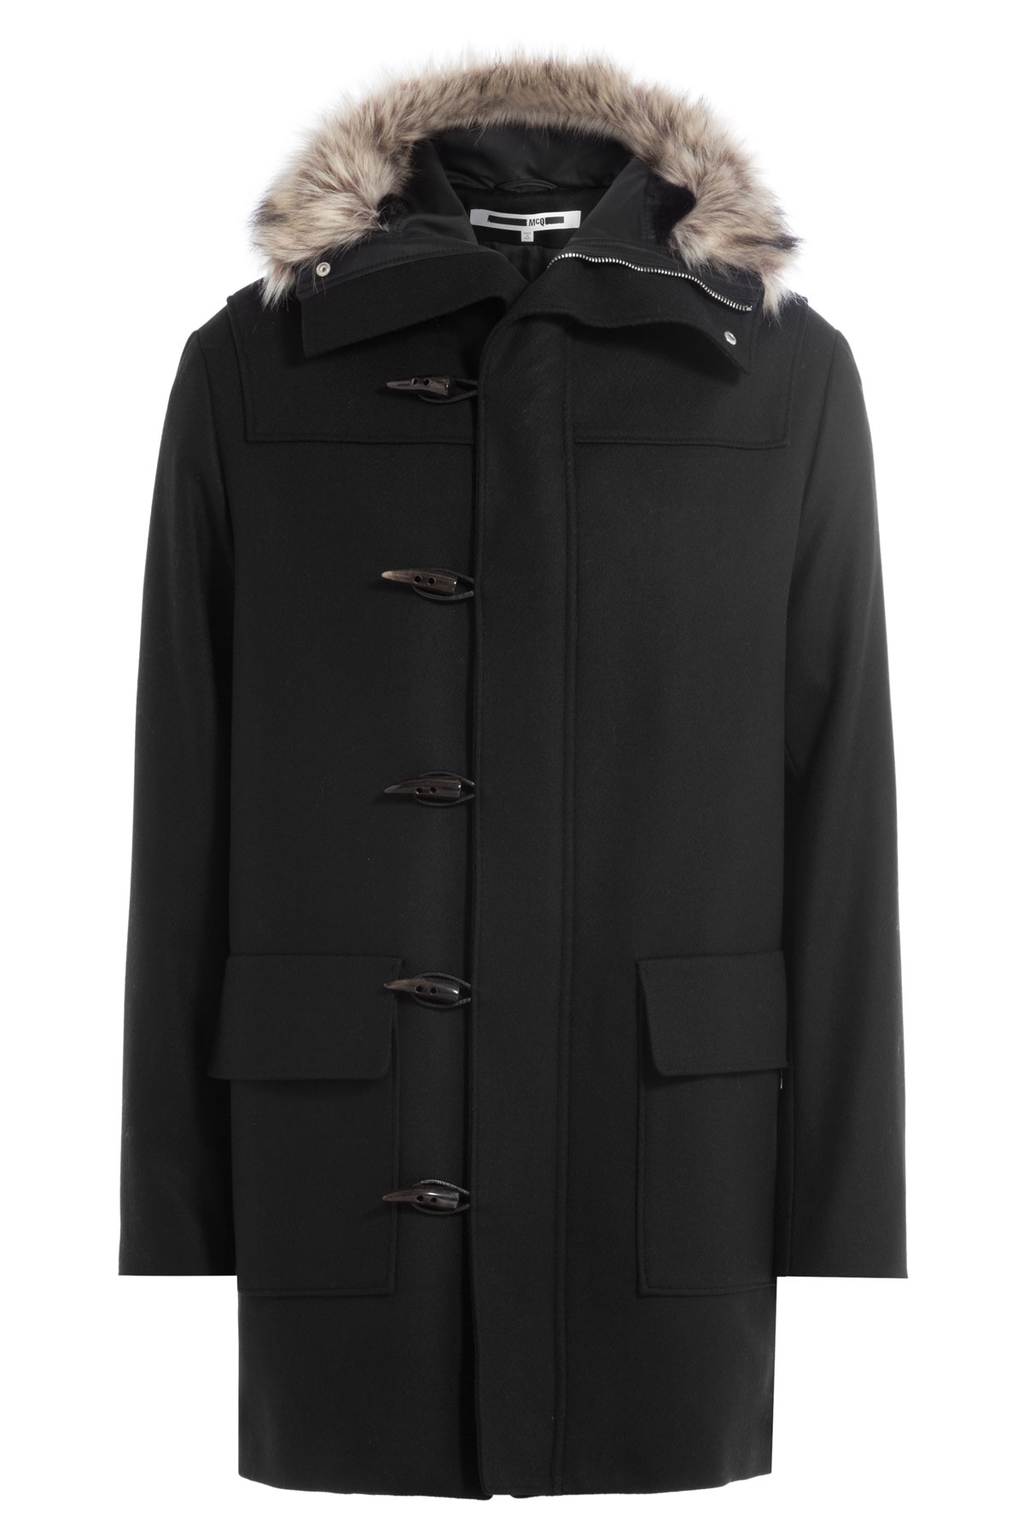 Duffle Parka With Wool And Faux Fur Trim - pattern: plain; length: below the bottom; collar: funnel; style: parka; back detail: hood; predominant colour: black; occasions: casual, work, creative work; fit: straight cut (boxy); fibres: wool - mix; sleeve length: long sleeve; sleeve style: standard; collar break: high; pattern type: fabric; texture group: woven bulky/heavy; embellishment: fur; season: a/w 2016; wardrobe: highlight; embellishment location: neck